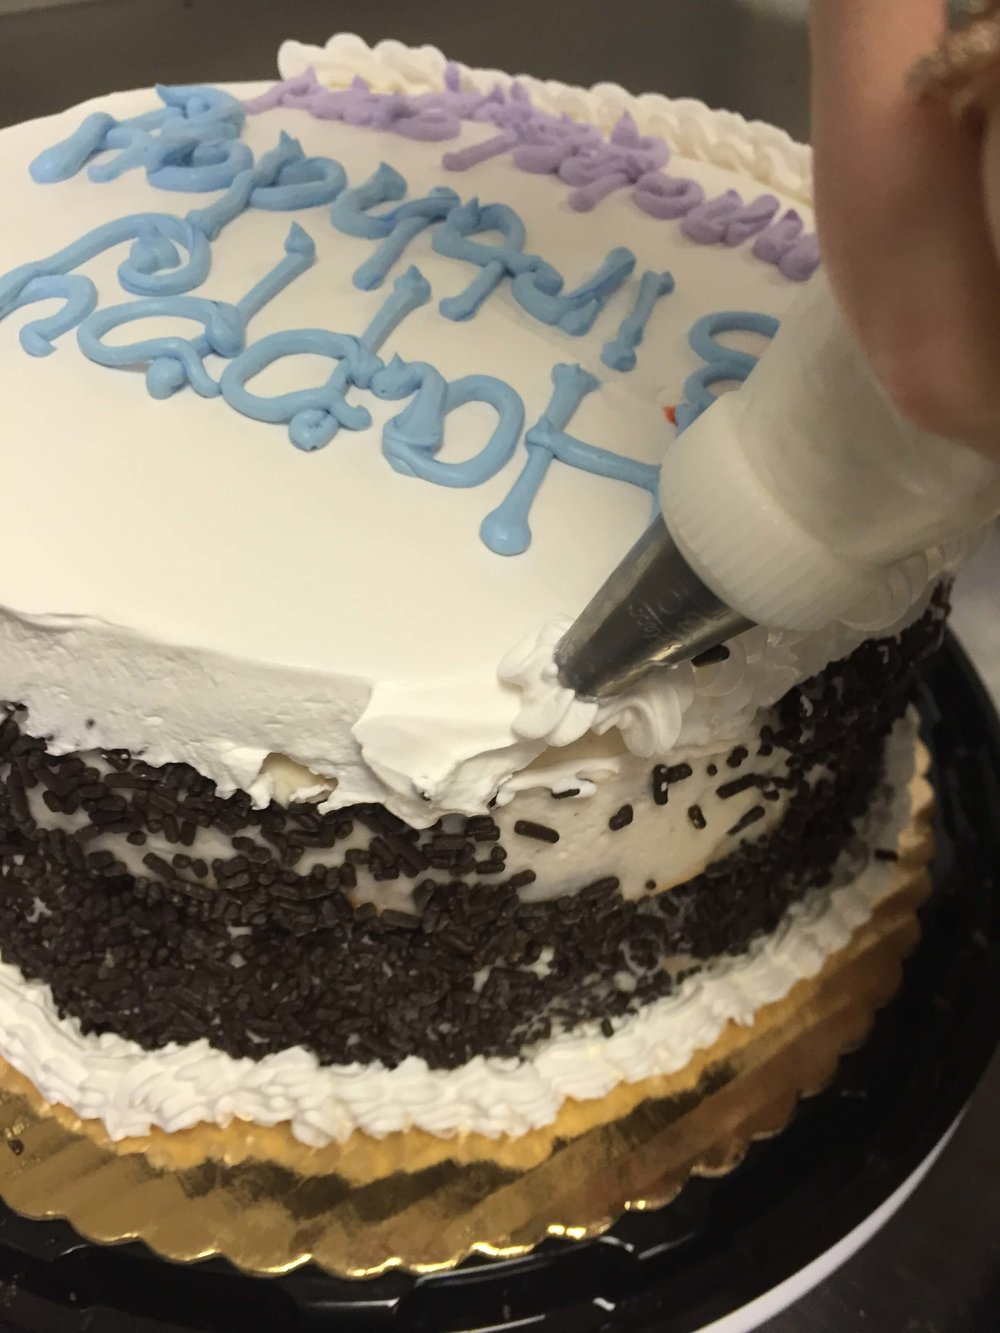 CAKES - text about cakes